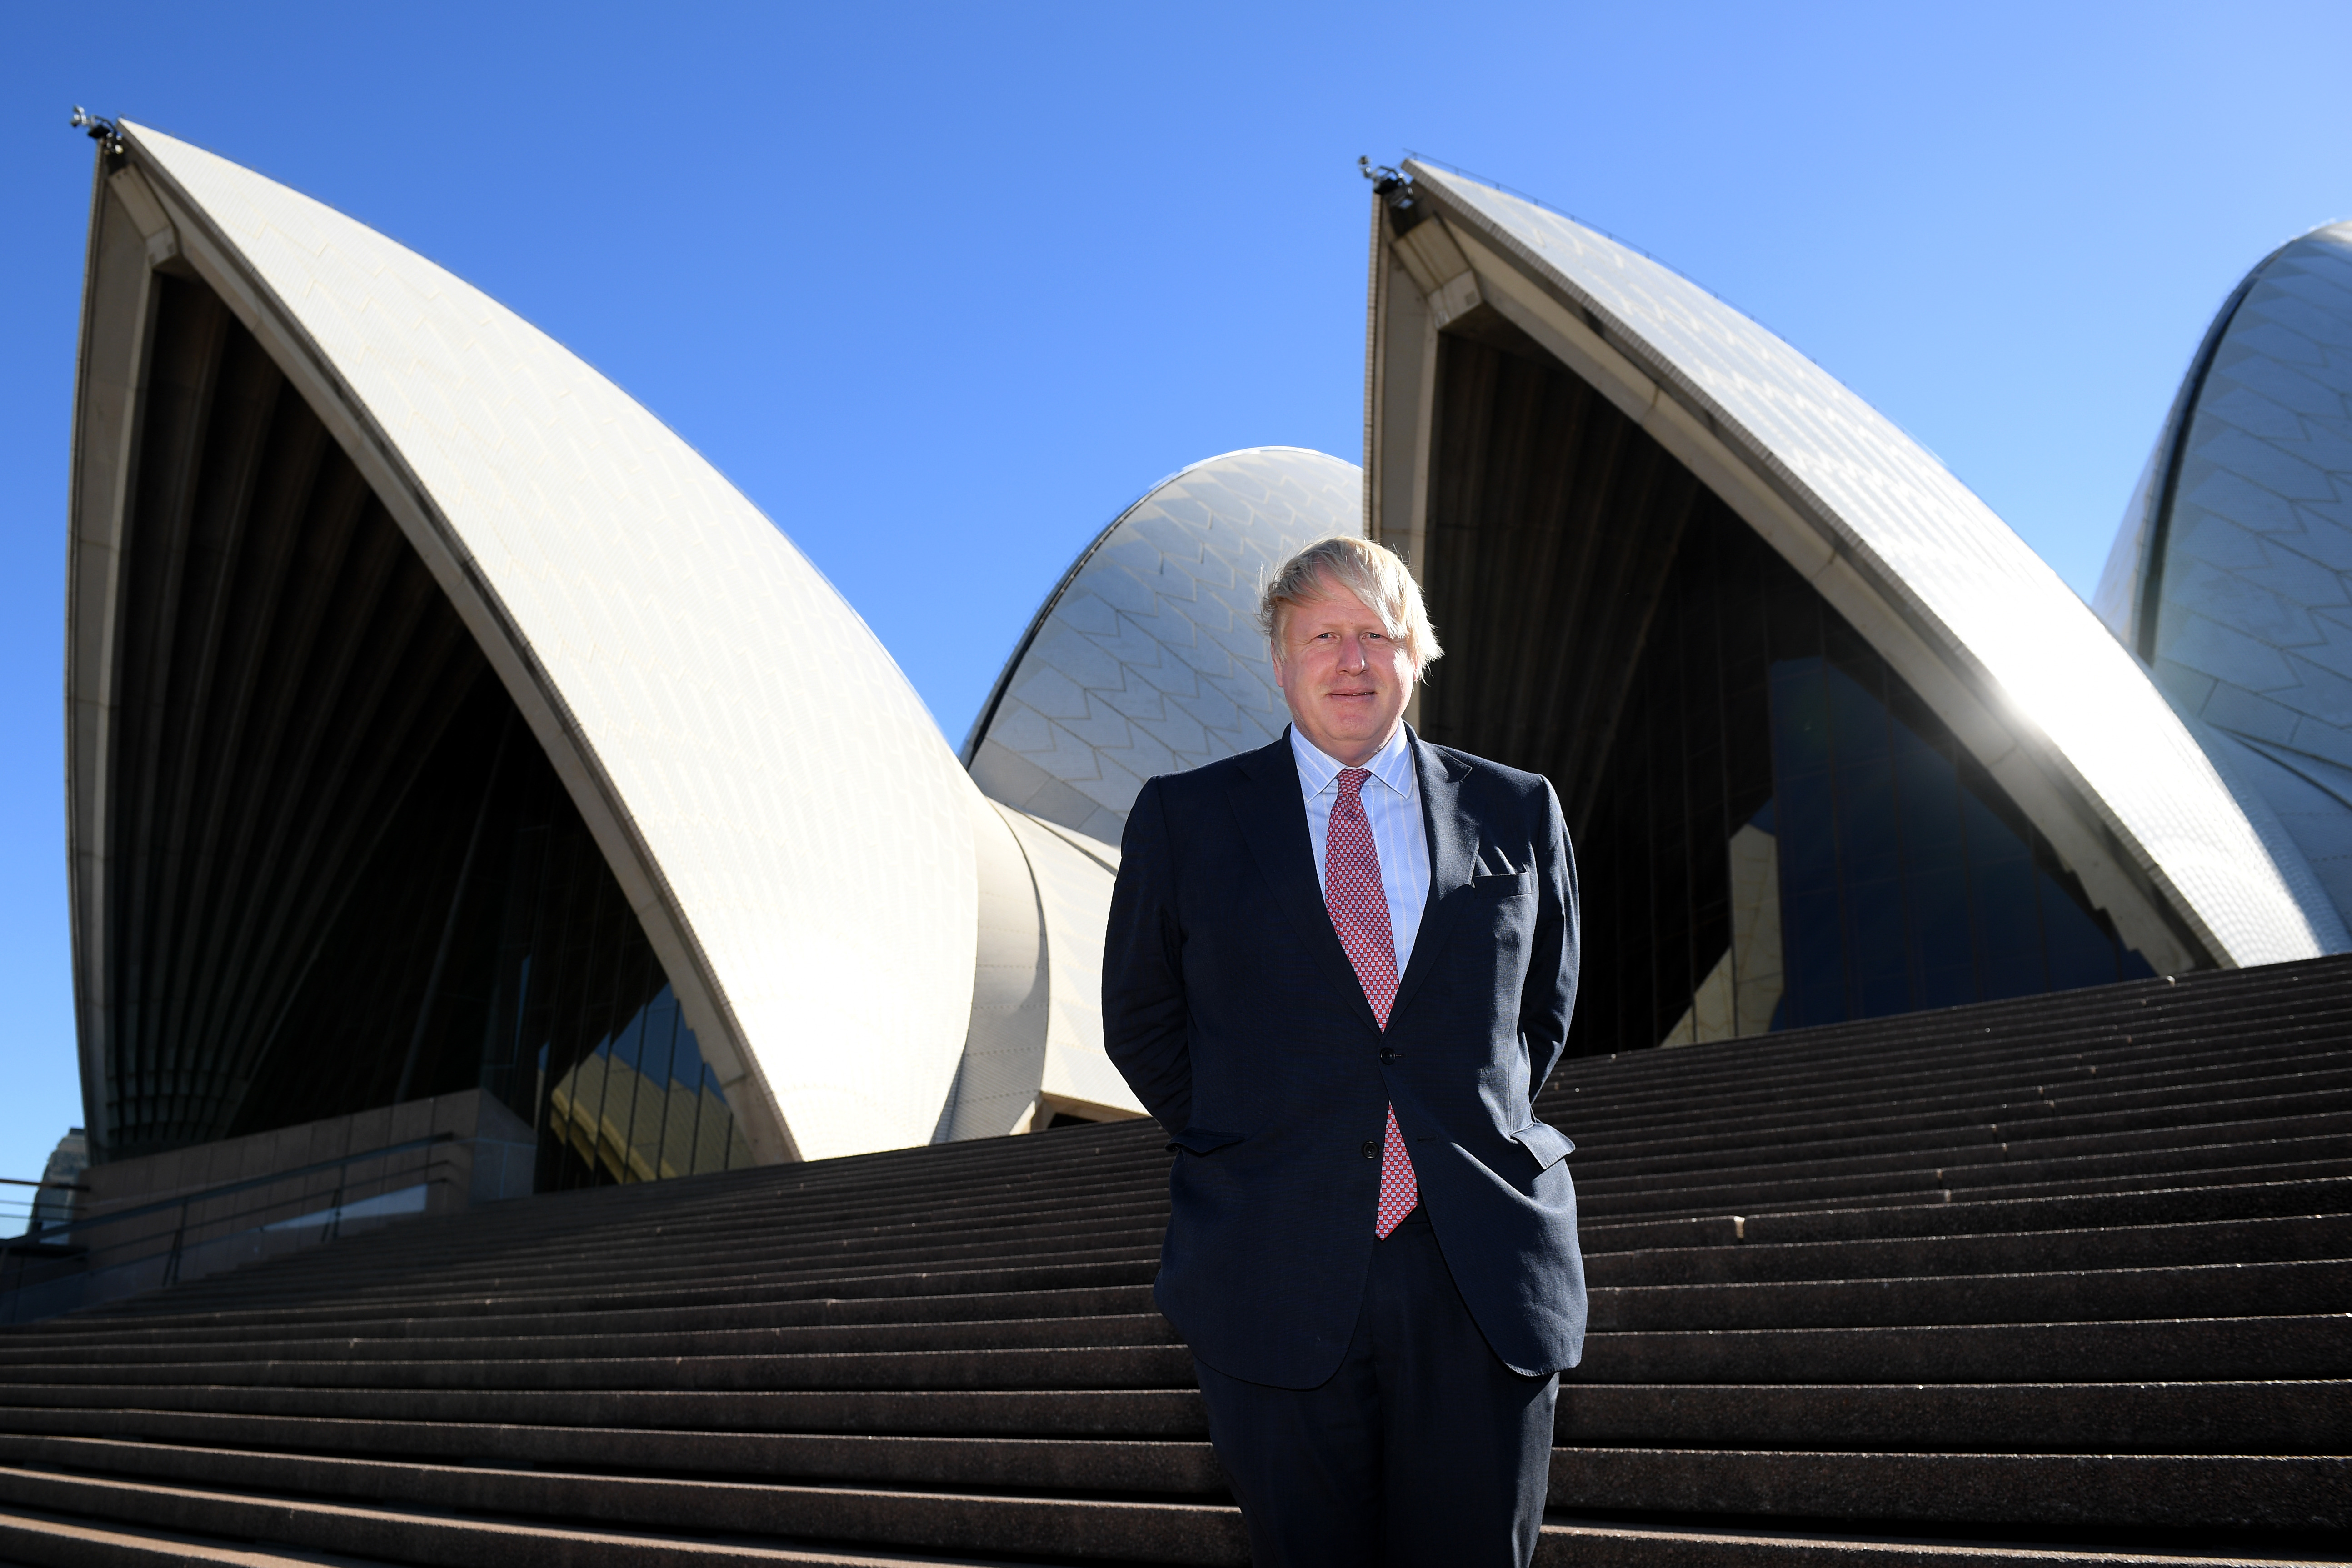 Boris Johnson poses on the stairs of the Sydney Opera House, July 26, 2017.